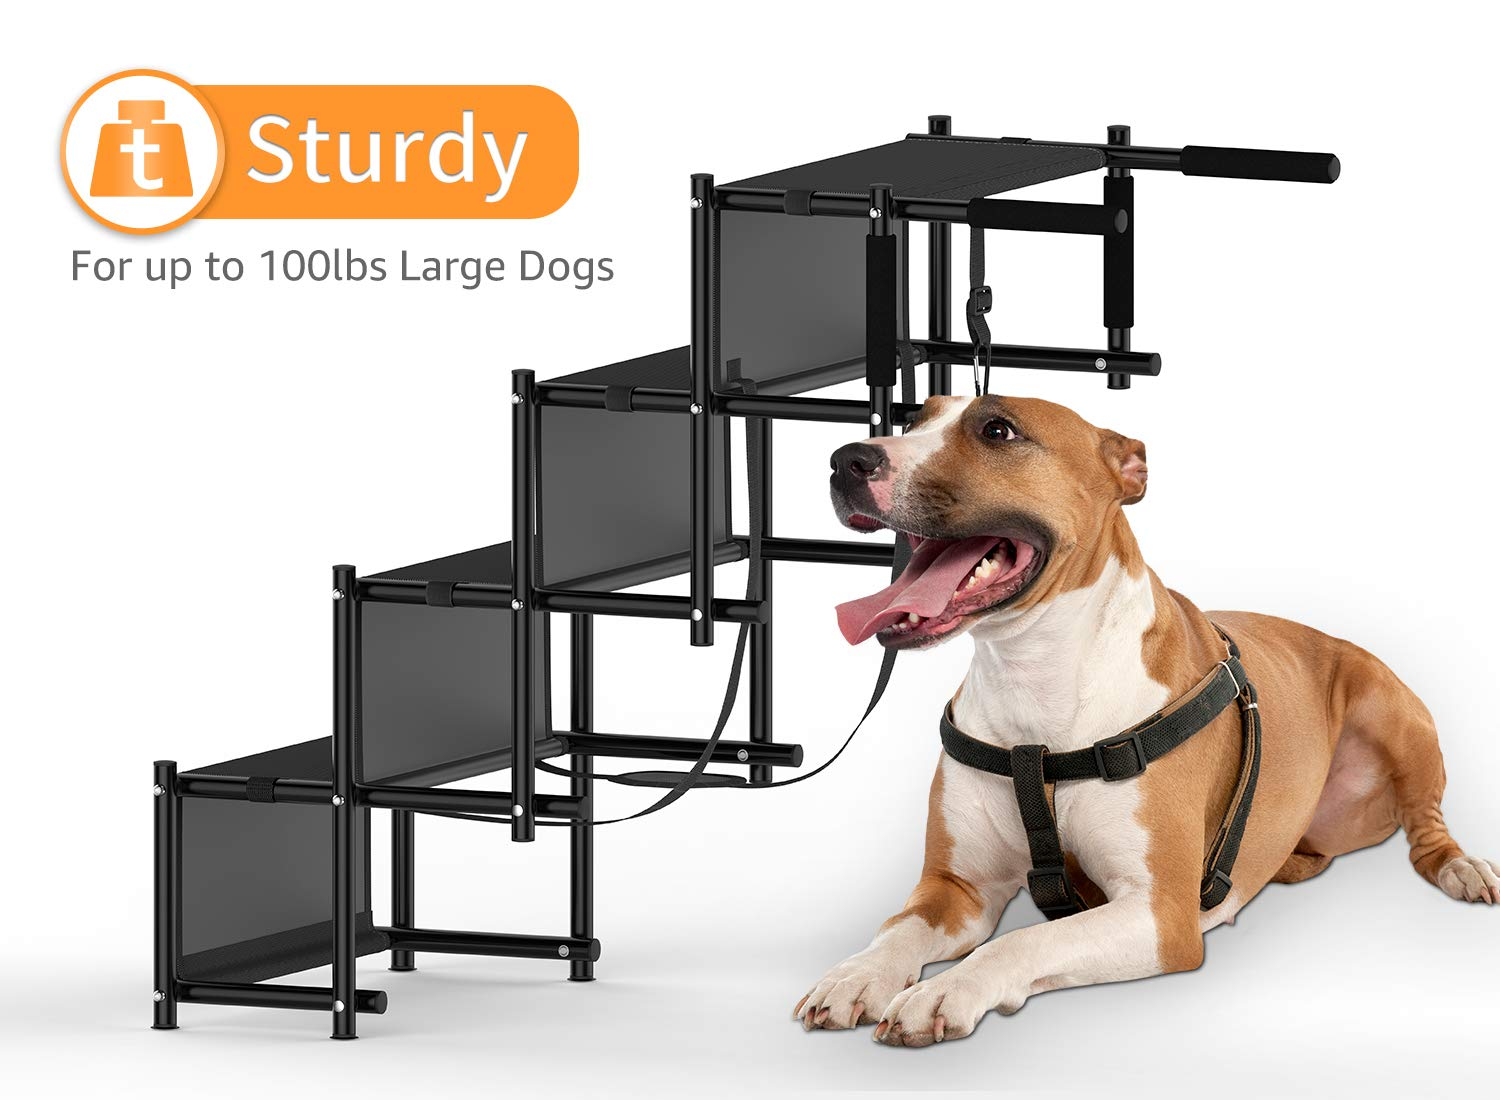 Dog Car Step Stairs Foldable SUKI&SAMI Metal Frame Folding Dog Ramp for Car,Lightweight Portable Large Dog Ladder,for Dogs and Cats,SUVs and Trucks,Couch and Bed,Protect Pets' Joint and Knee by SUKI&SAMI (Image #4)